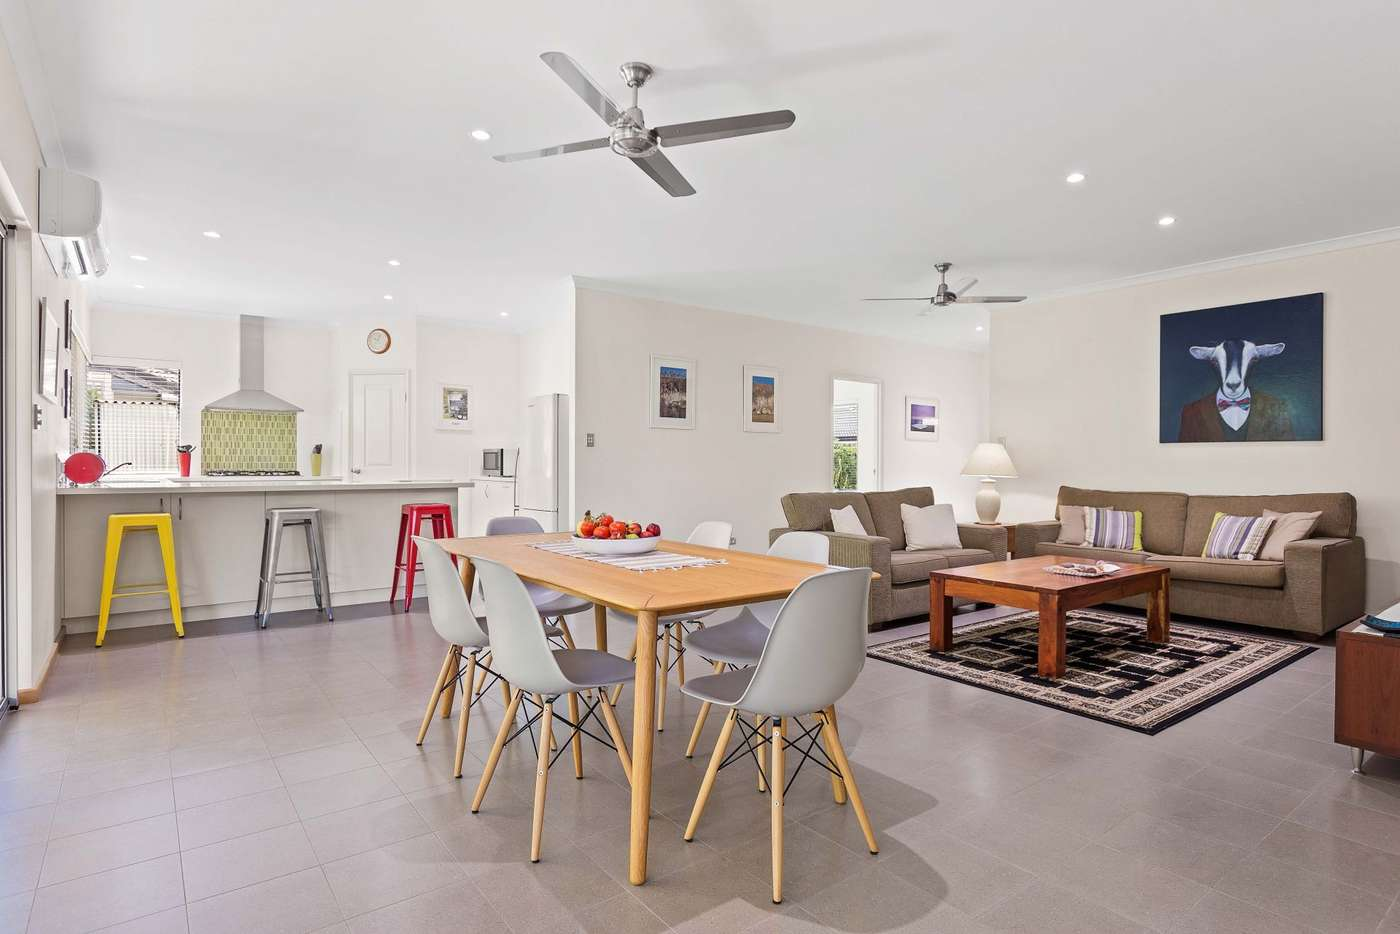 Main view of Homely house listing, 59A Fairbairn Rd, Busselton WA 6280